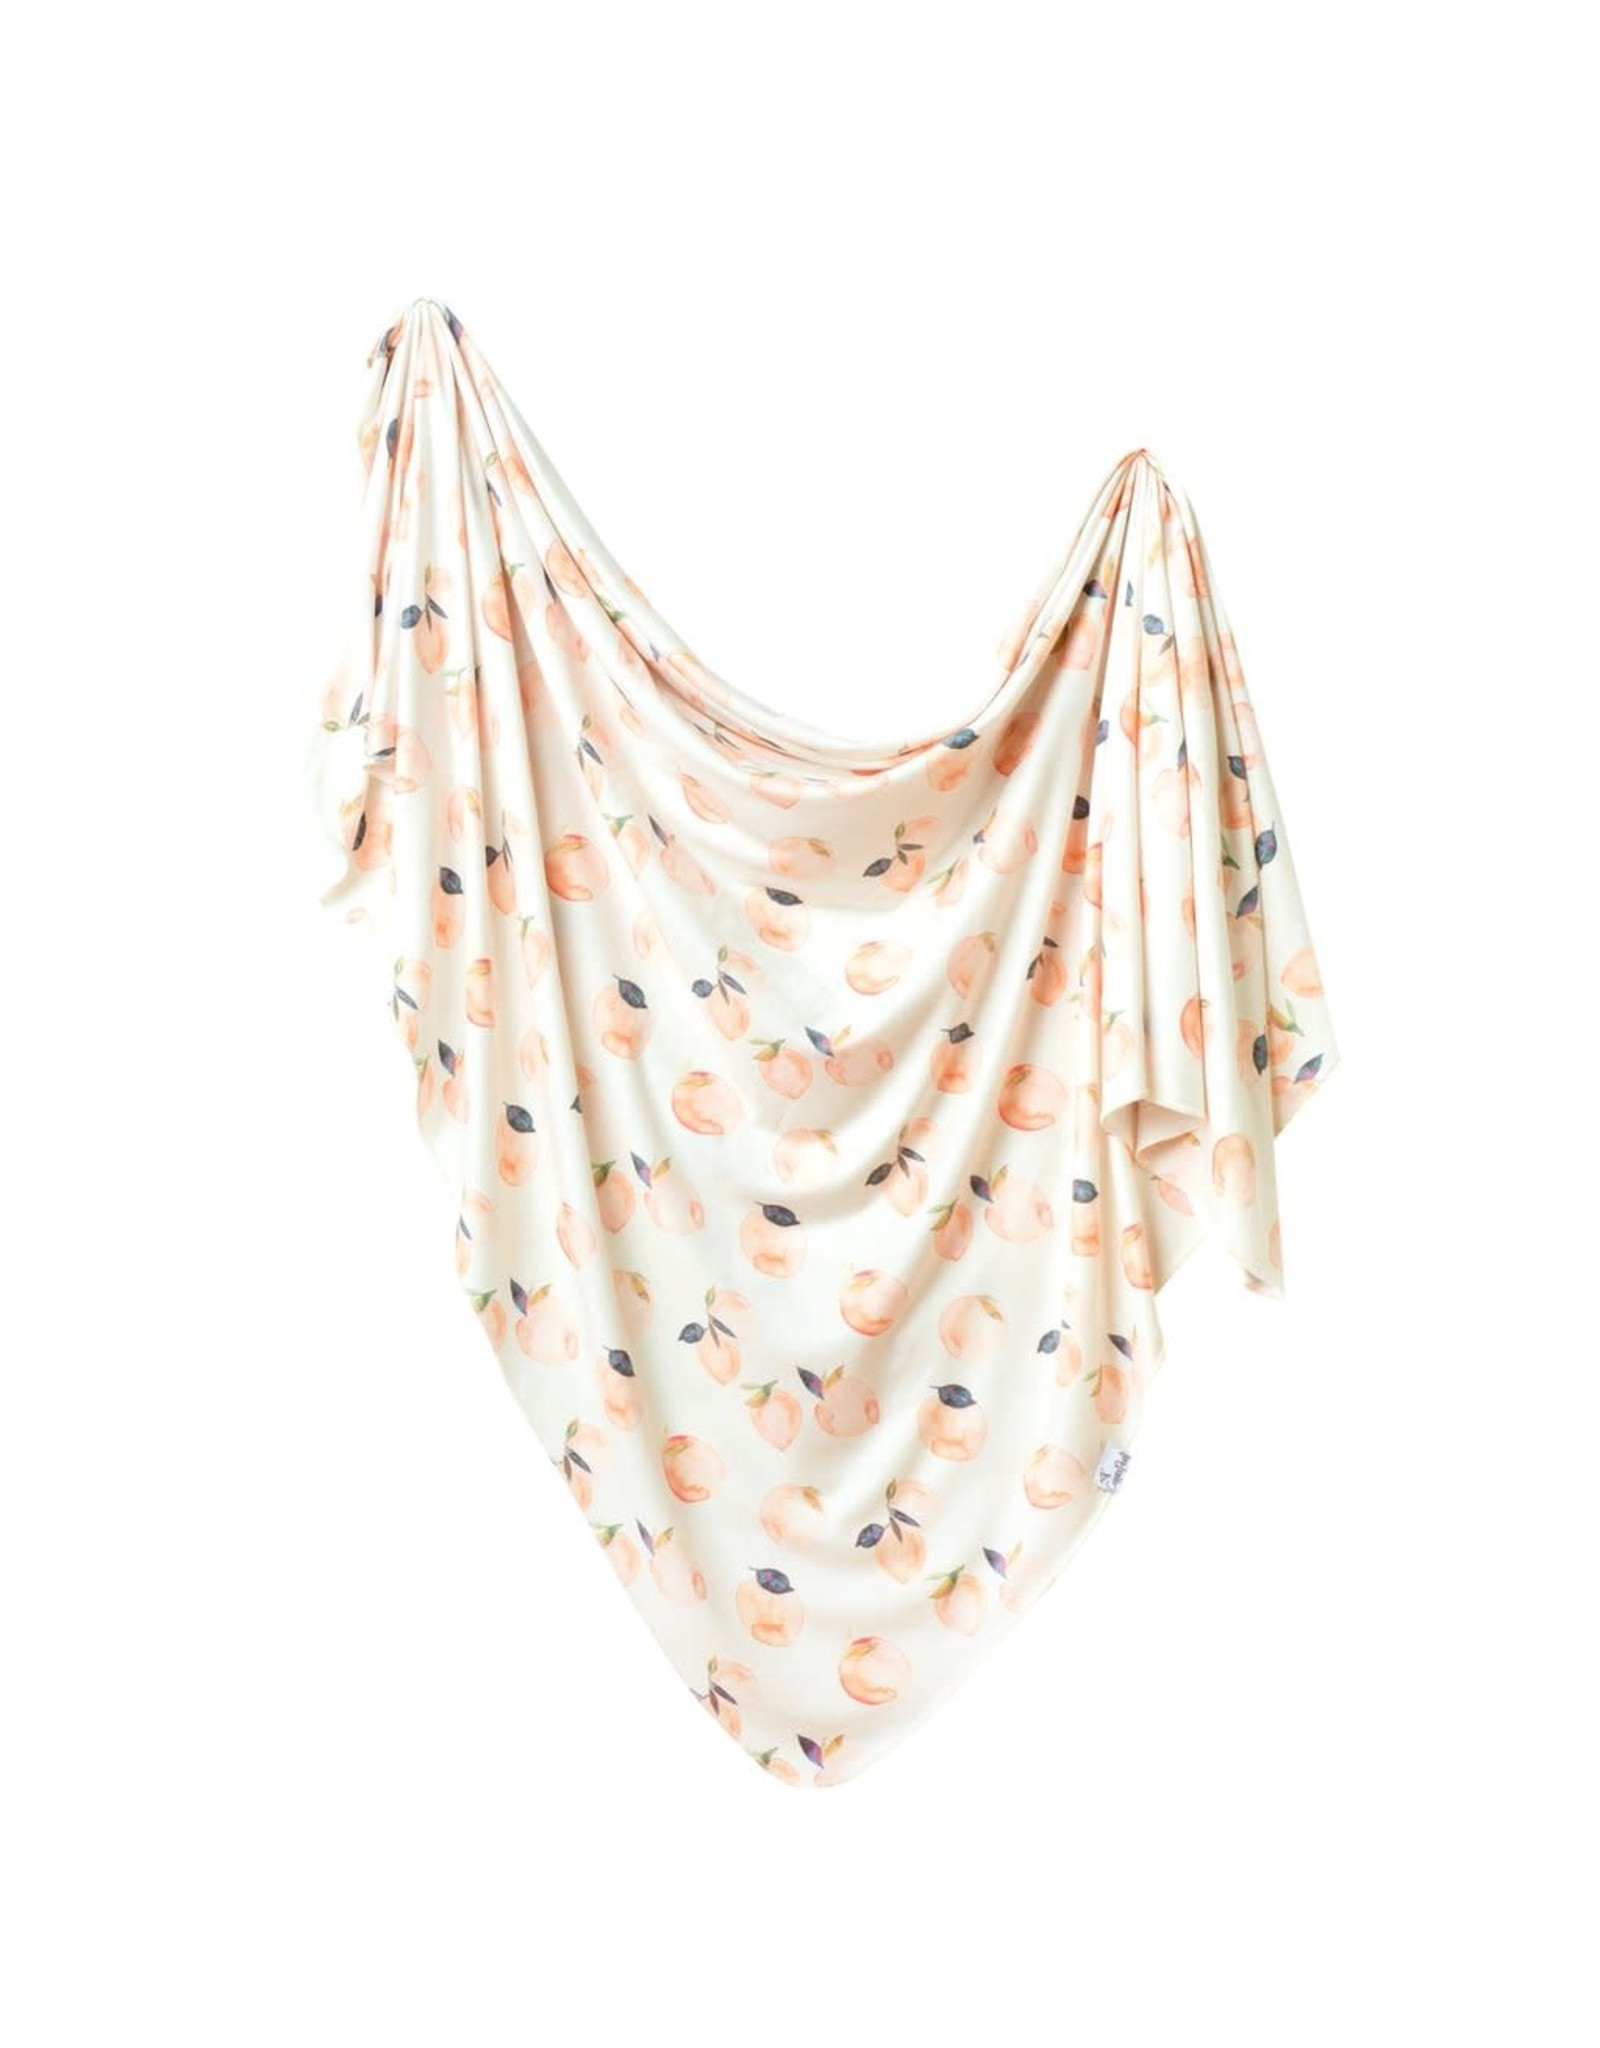 Copper Pearl Caroline Swaddle Blanket